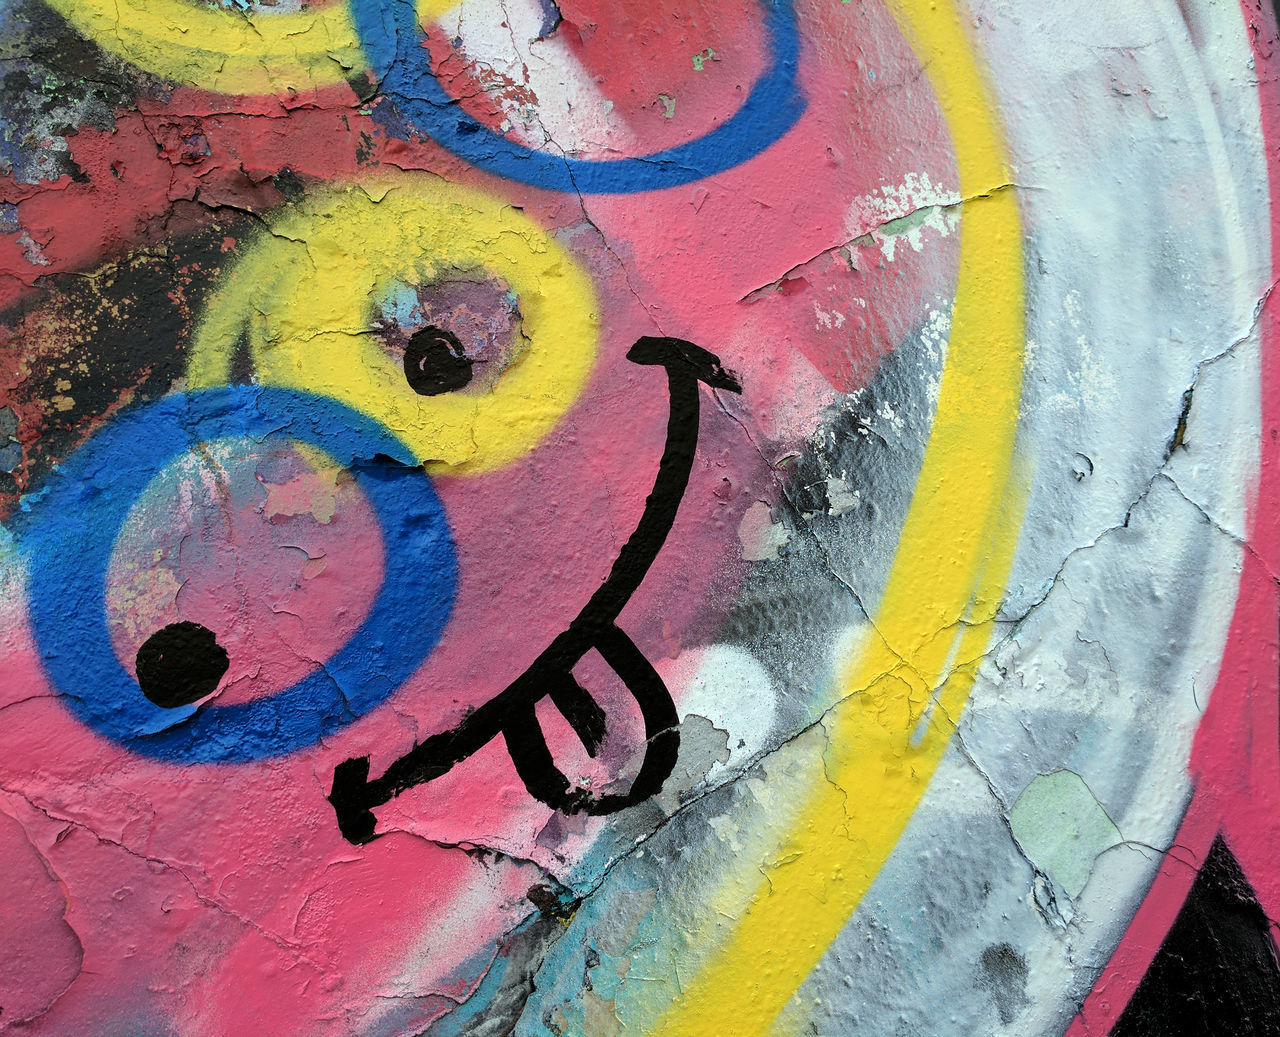 Colorful graffiti of a Smiling Face with tongue hanging out Abstract Close-up First Eyeem Photo Full Frame Fun Graffiti Graffiti Art Happy Multi Colored No People Painted Image Red Silly Face Silly Faces  Smile Smiling Textured  Tongue Out Urban UrbanART